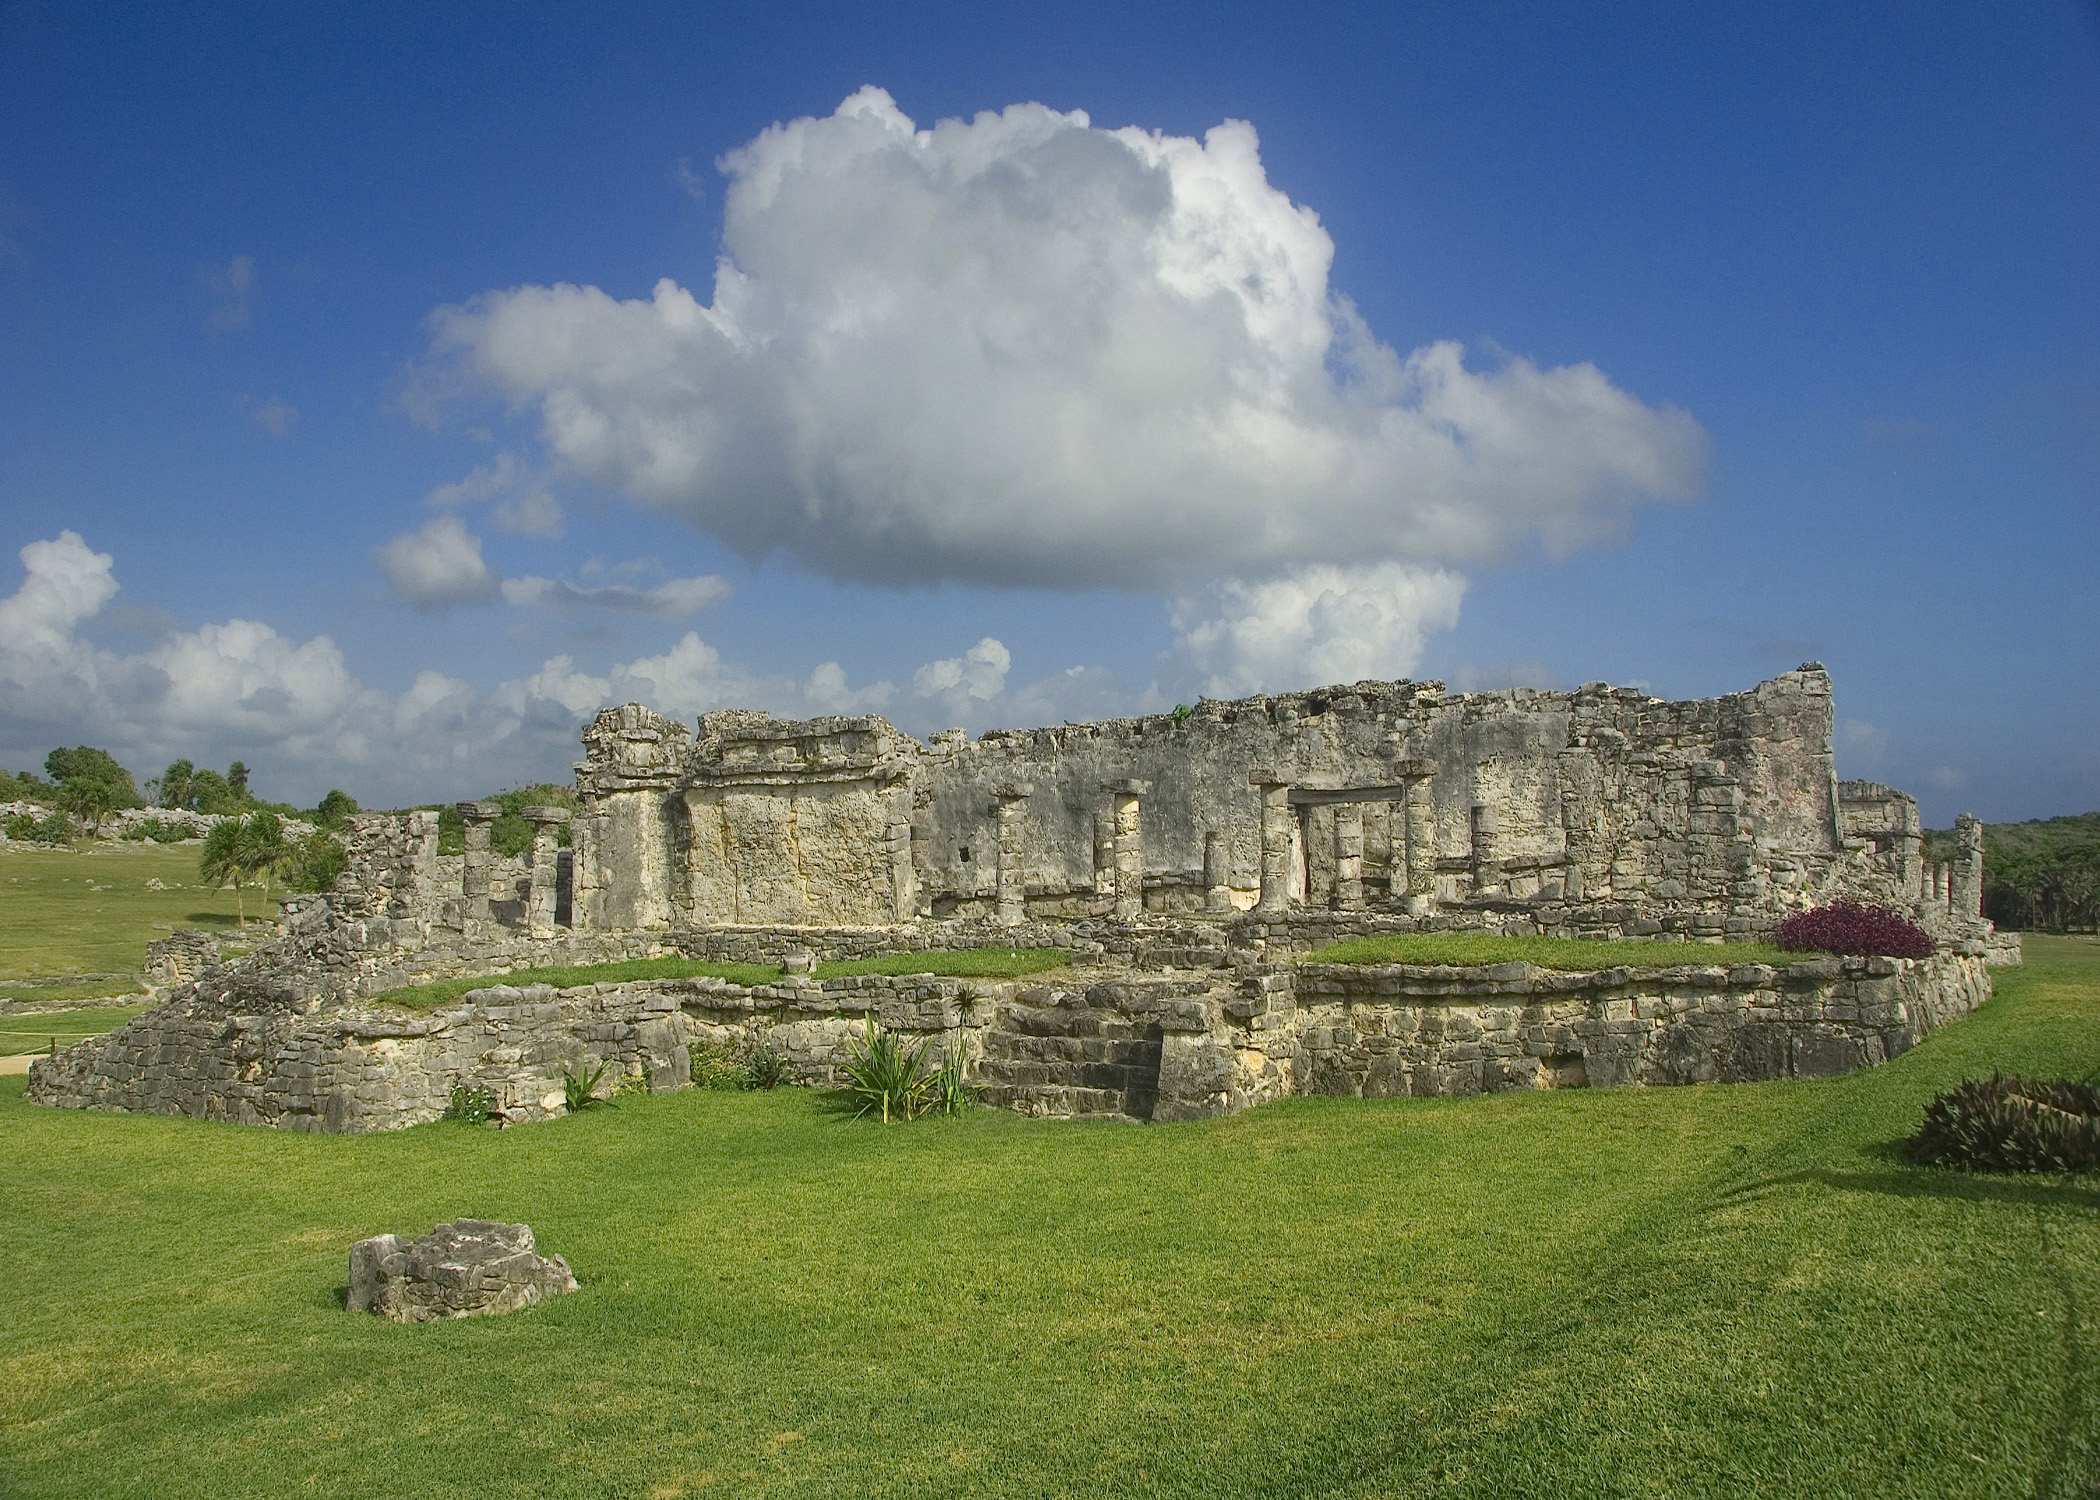 House of the Columns (Tulum)